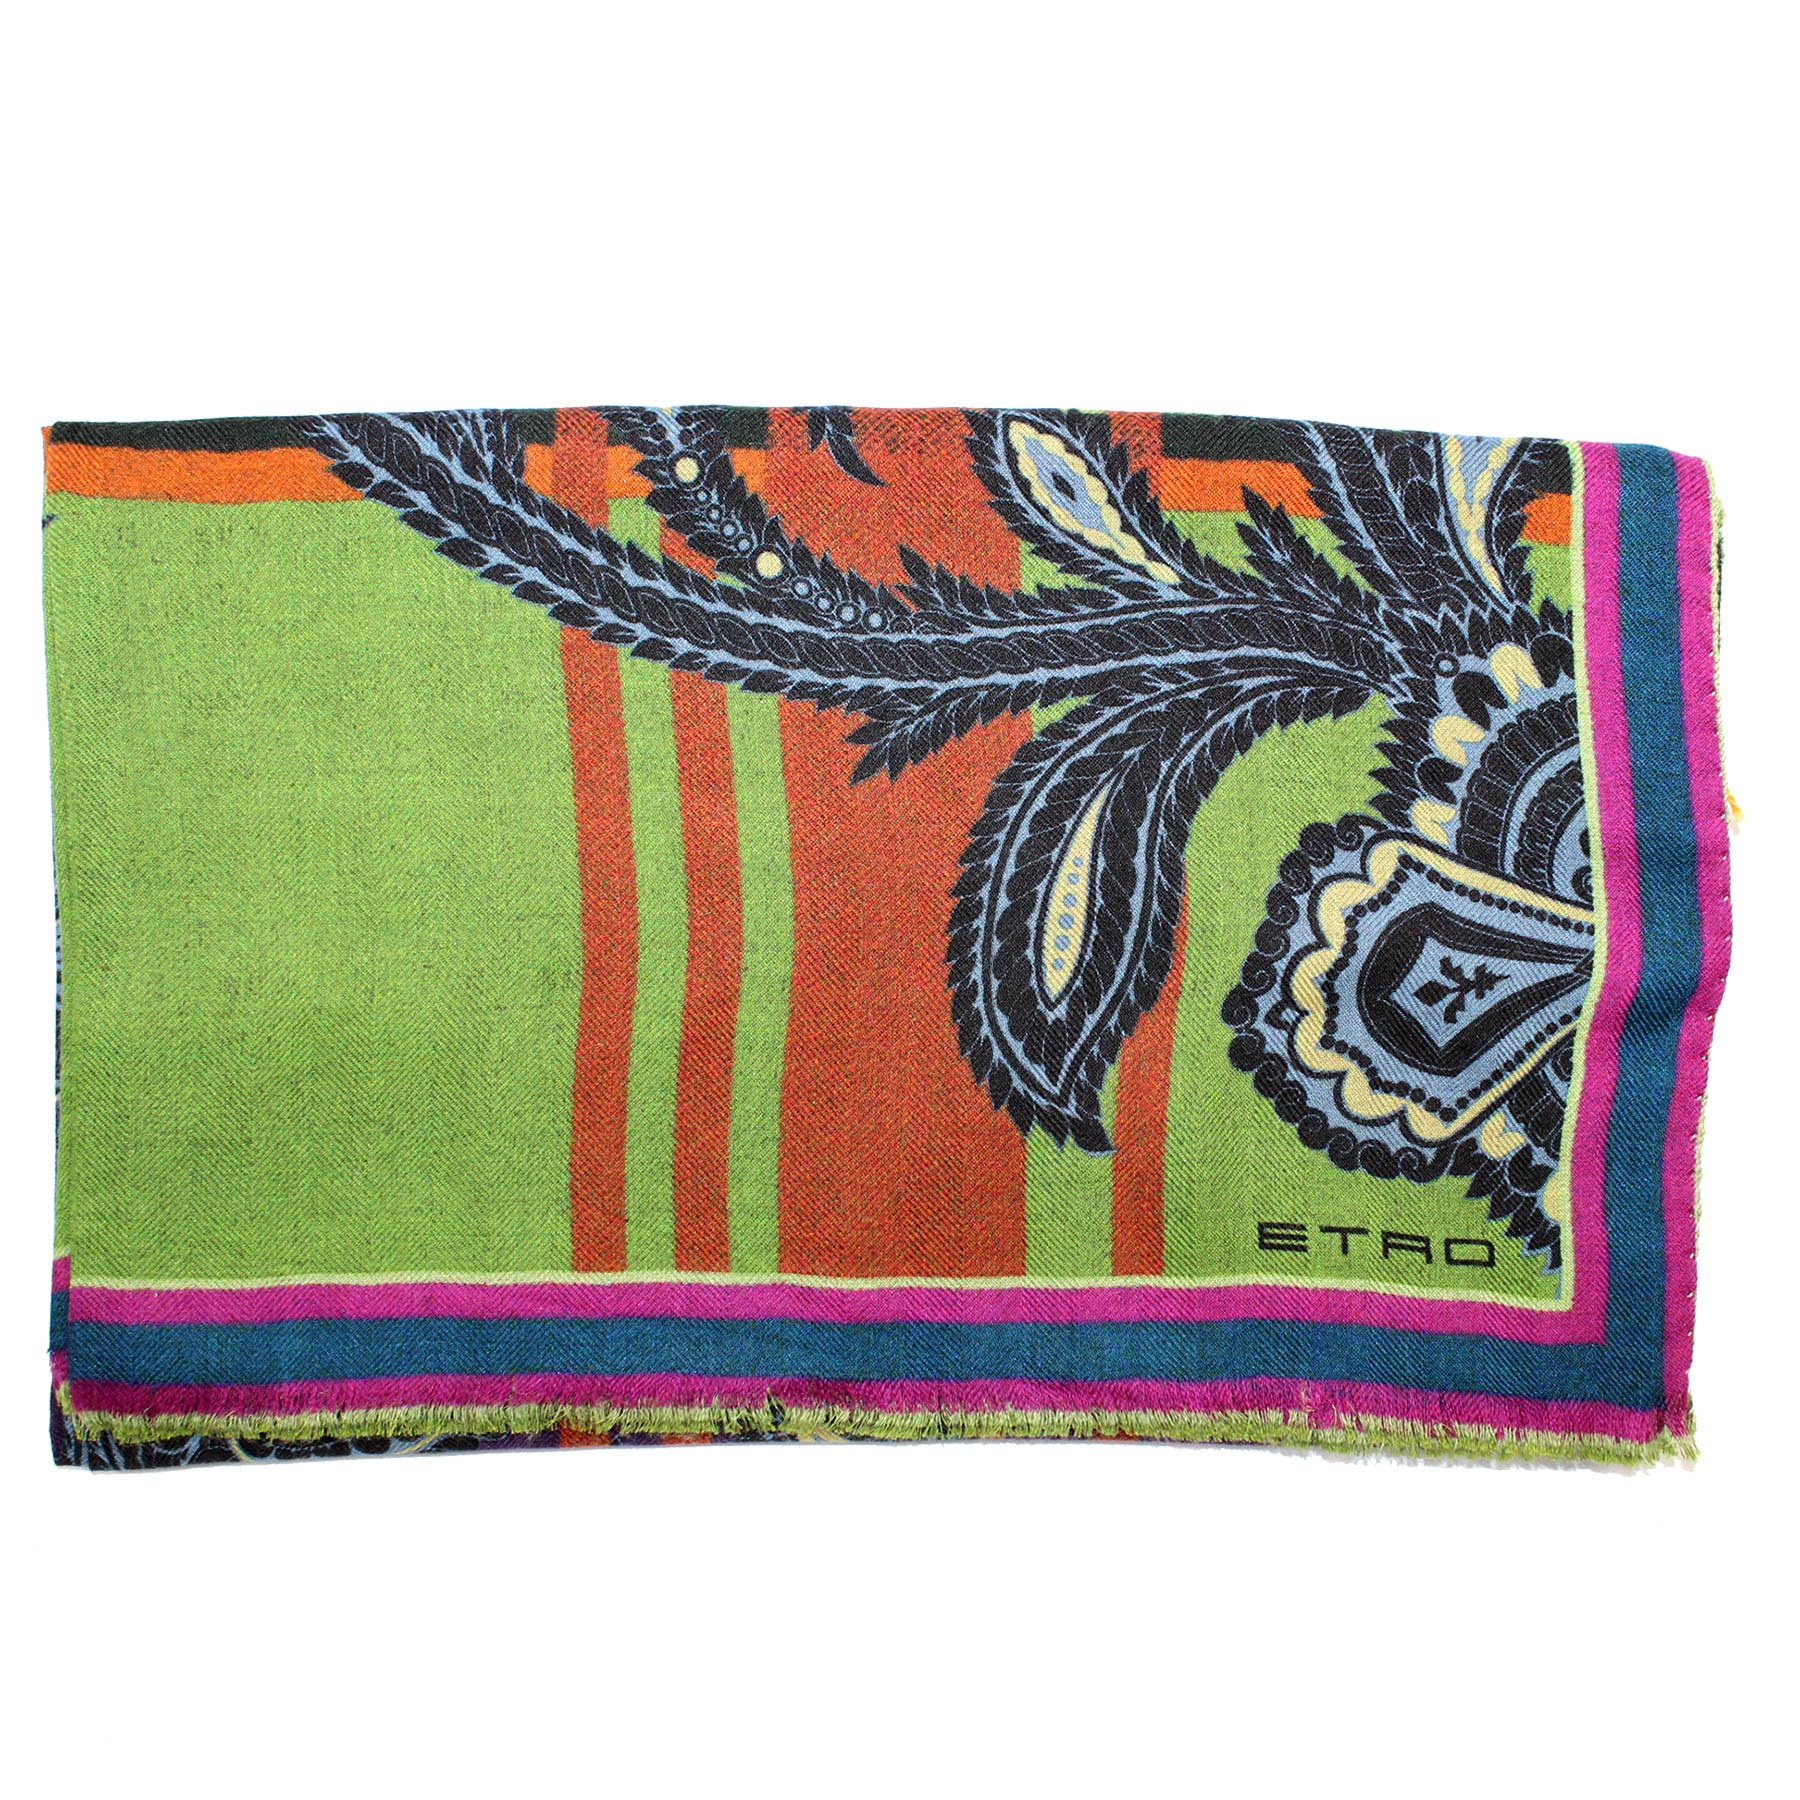 Etro Scarf Olive Purple Rust Orange Design Women Collection - Modal Cashmere Shawl